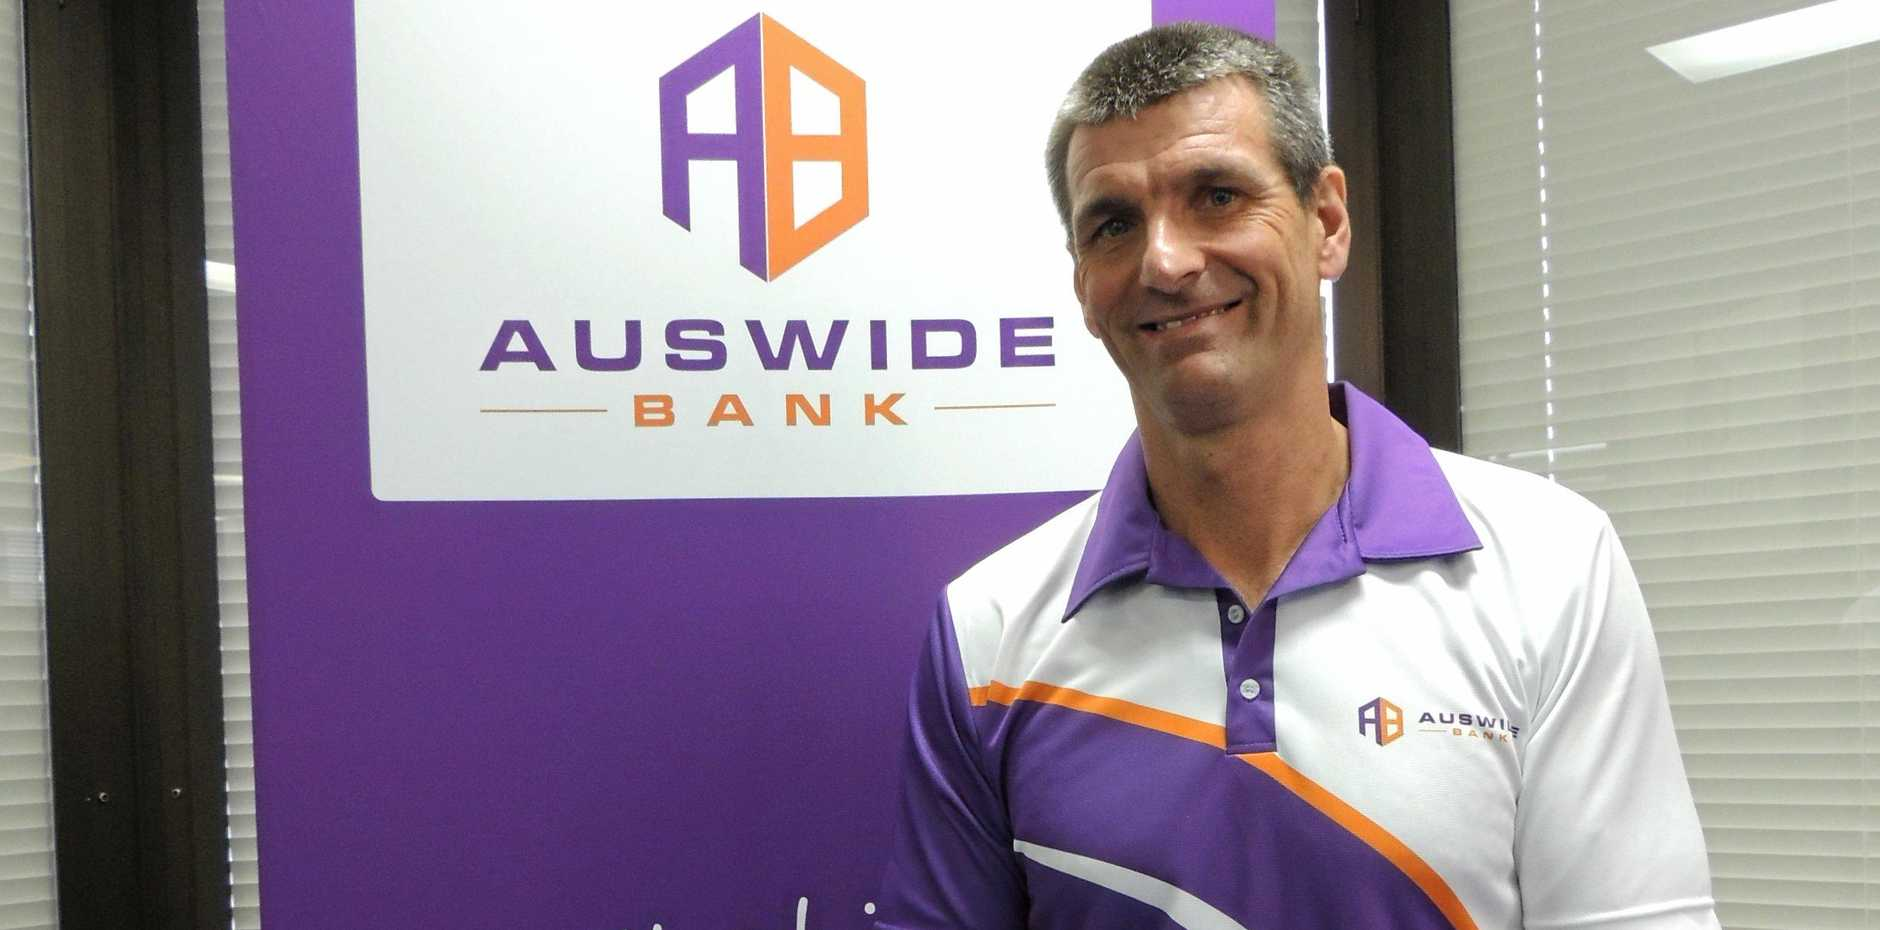 Auswide Bank's managing director Martin Barrett said the bank